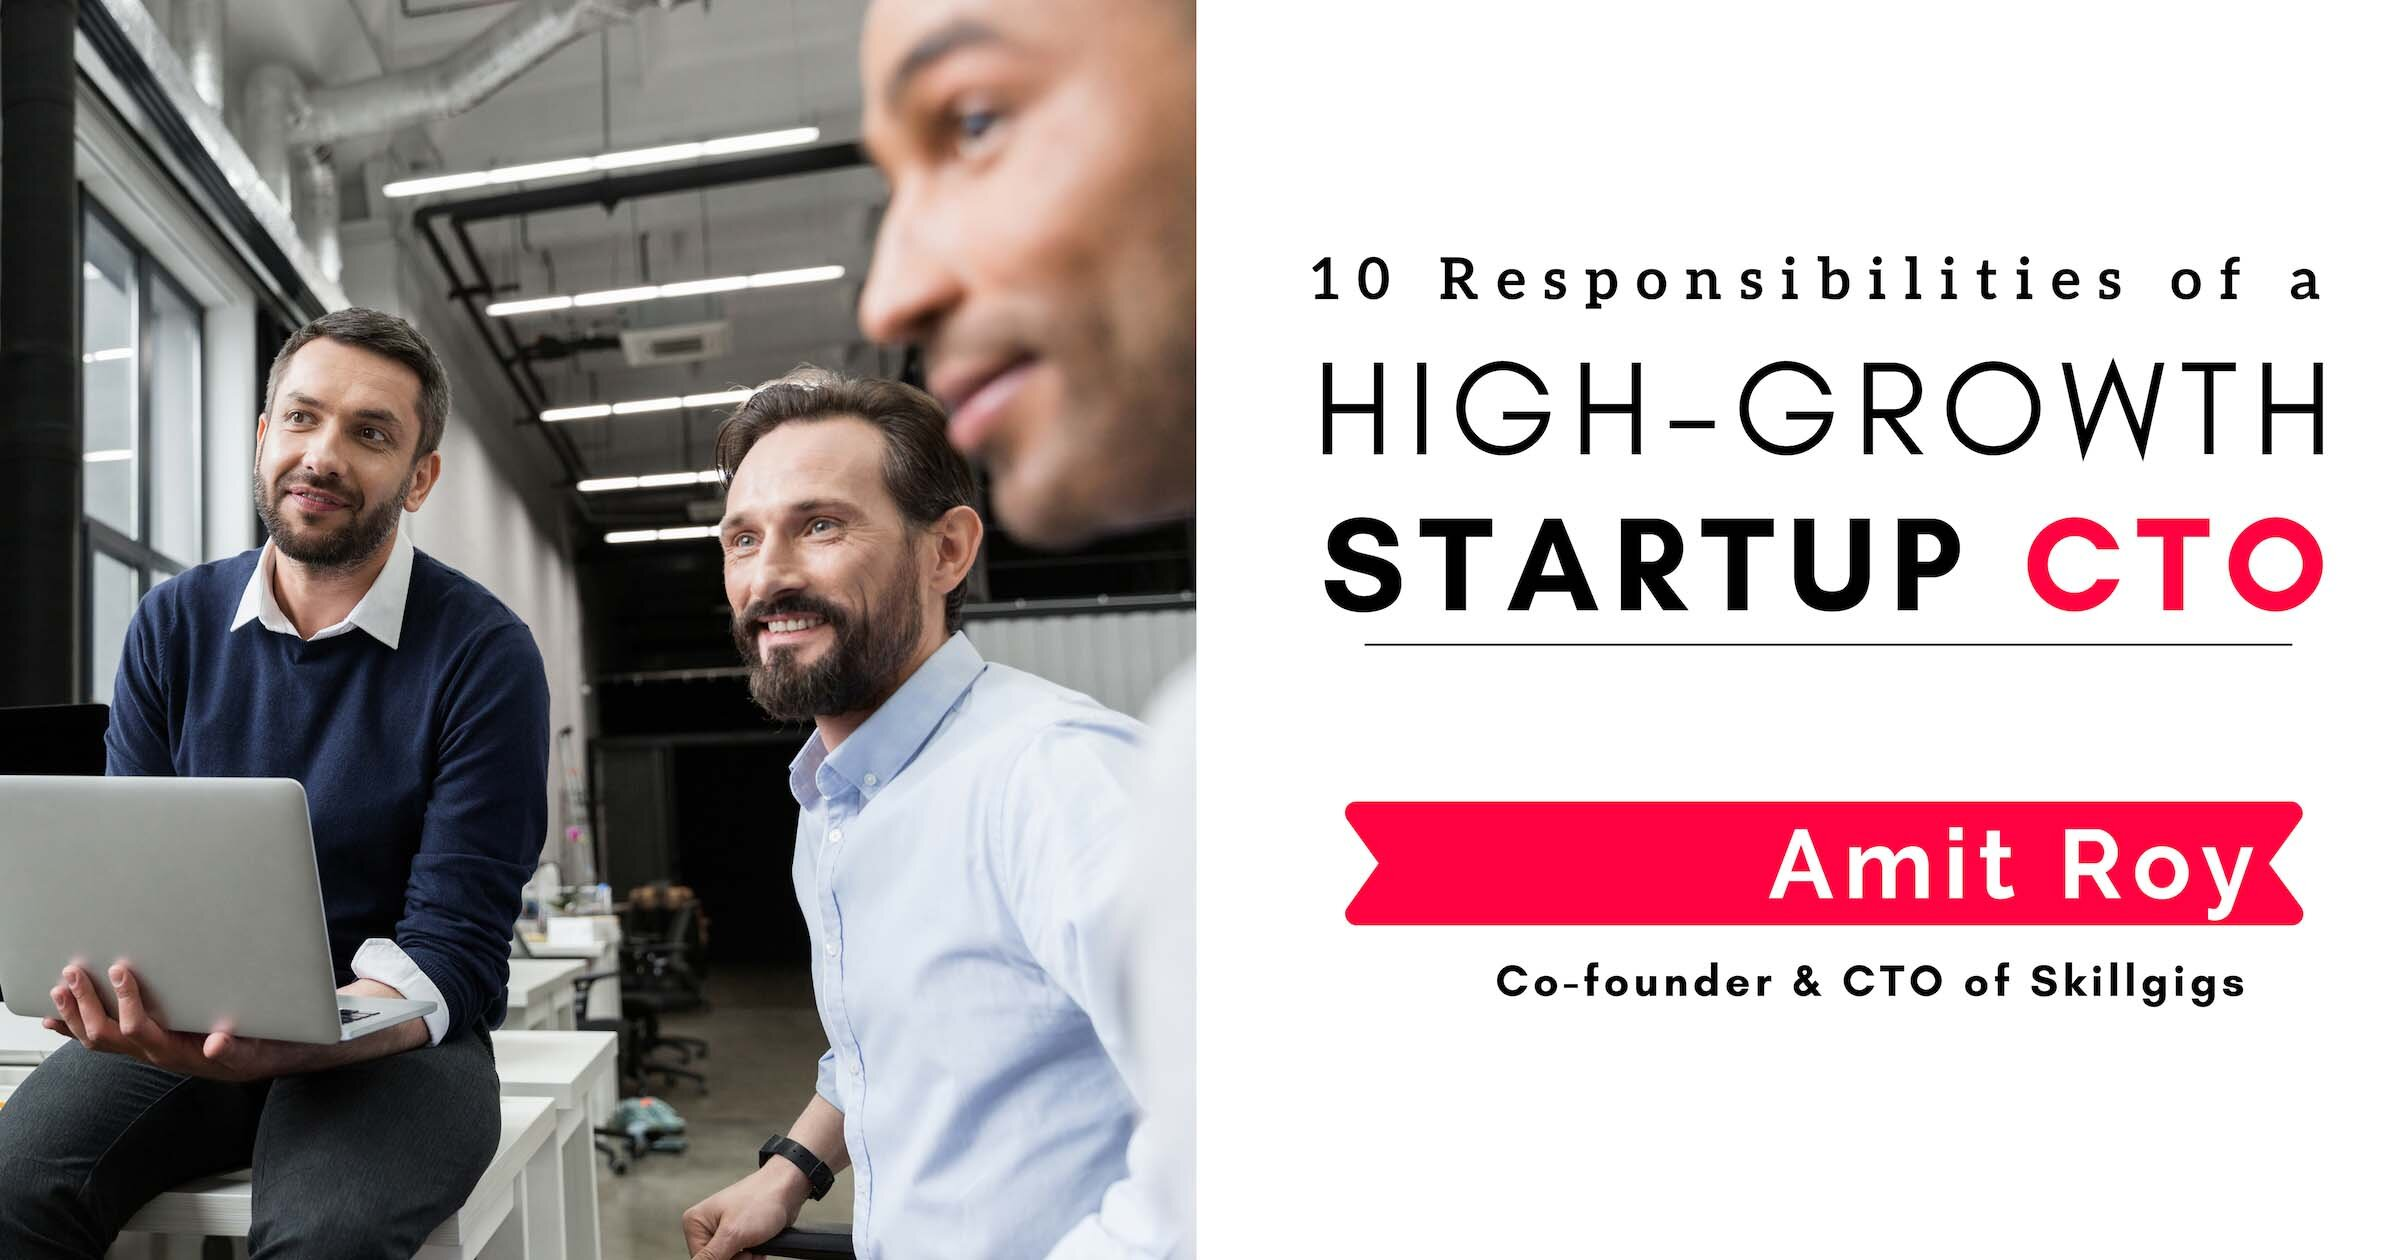 10 Responsibilities of a High-Growth Startup CTO